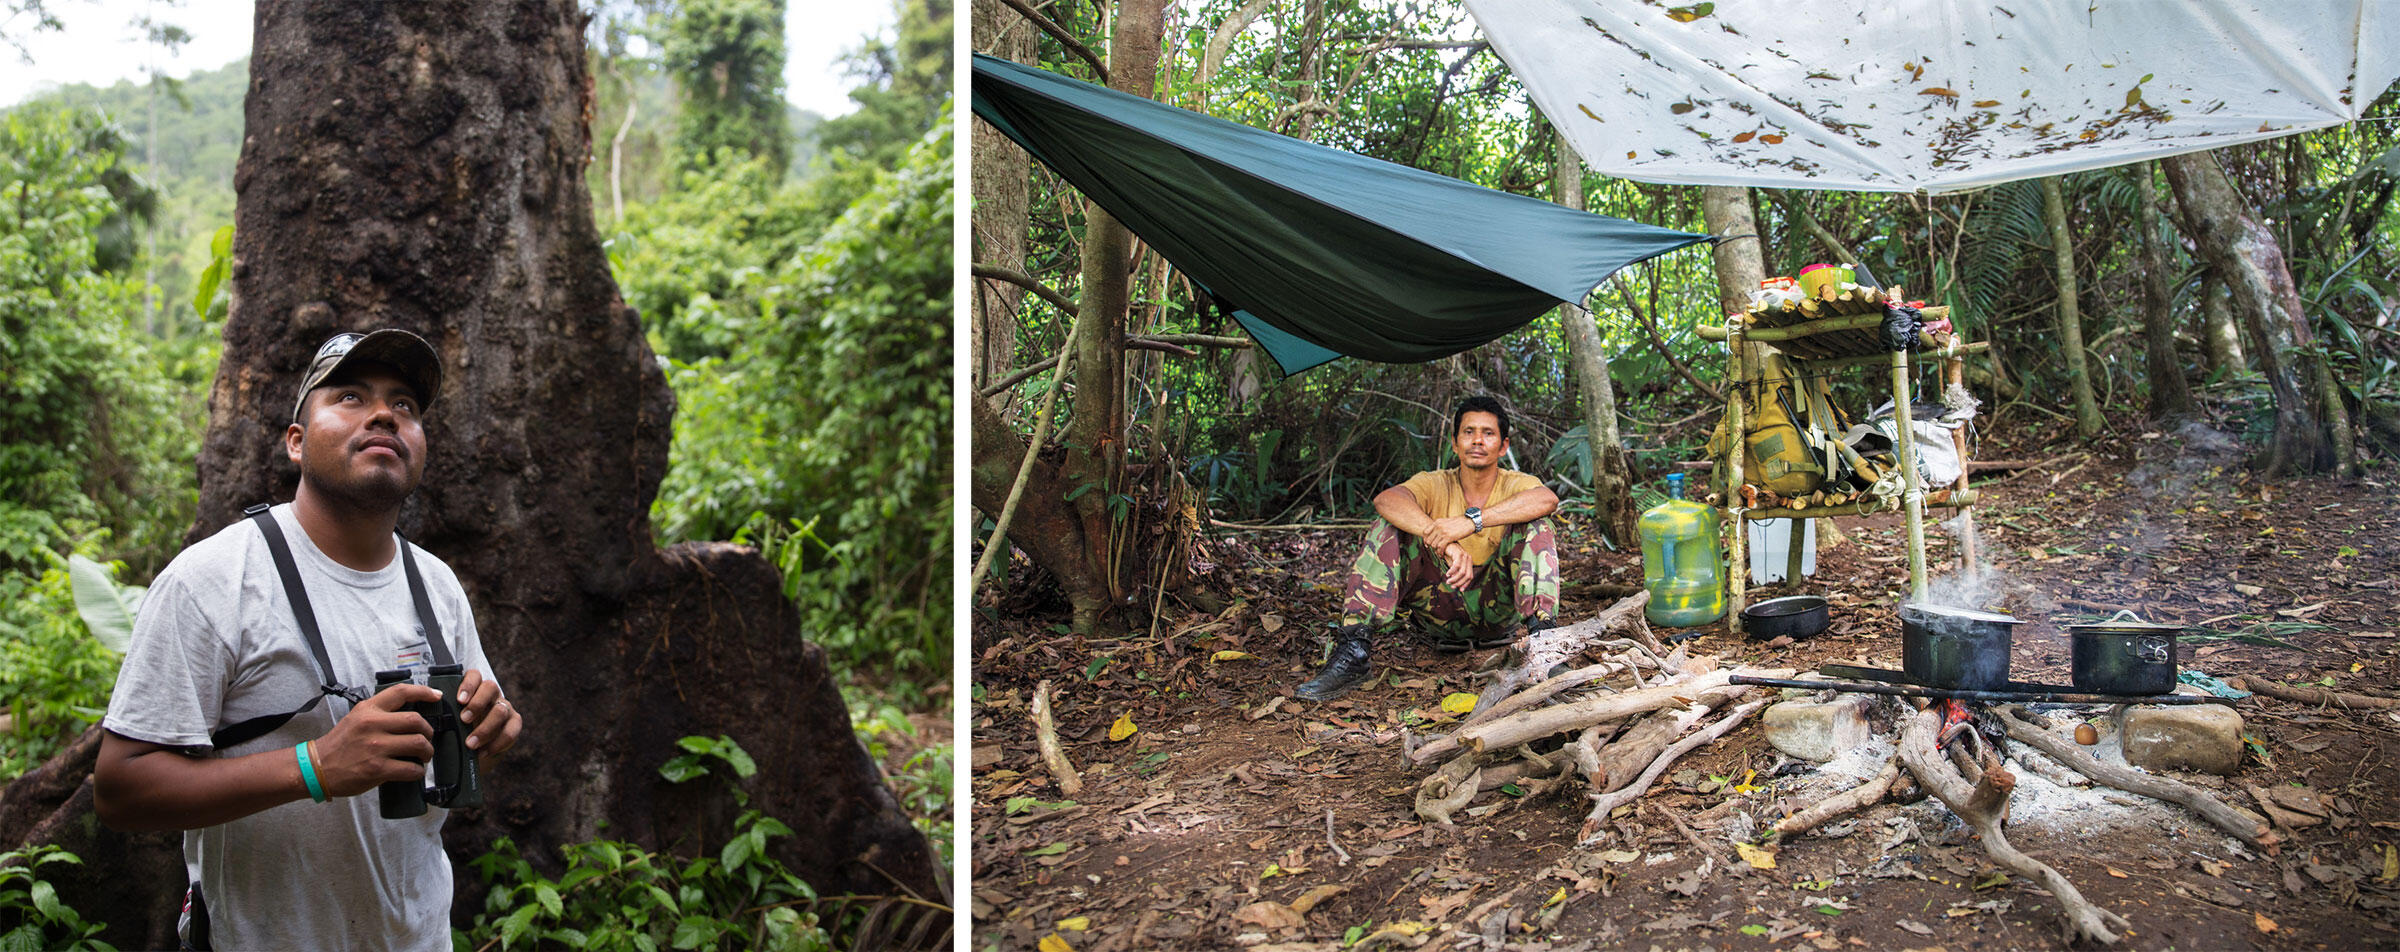 From left: Isael Mai stands in front of one of the trees with an active macaw nest. Albert Woodye takes a break in one of the rangers' camps near an active nest. Photos: Camilla Cerea/Audubon